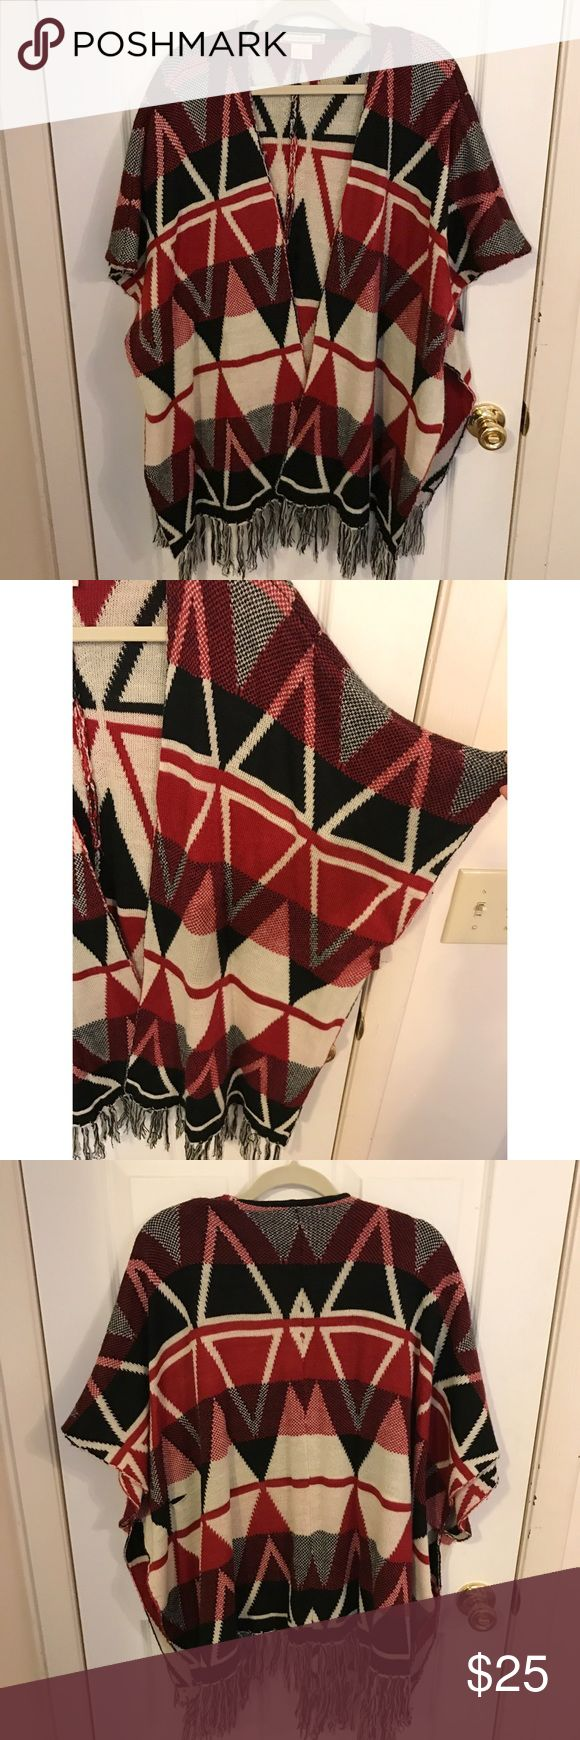 Aztec-y poncho/cardigan Pretty batwing cardigan/cape perfect for fall or cold summer nights. Wore this a few times to football games last fall!! Looks really nice with a black or white long sleeve top or v neck t shirt under it with jeans 😊 love this thing but time for a new home Flying Tomato Sweaters Shrugs & Ponchos